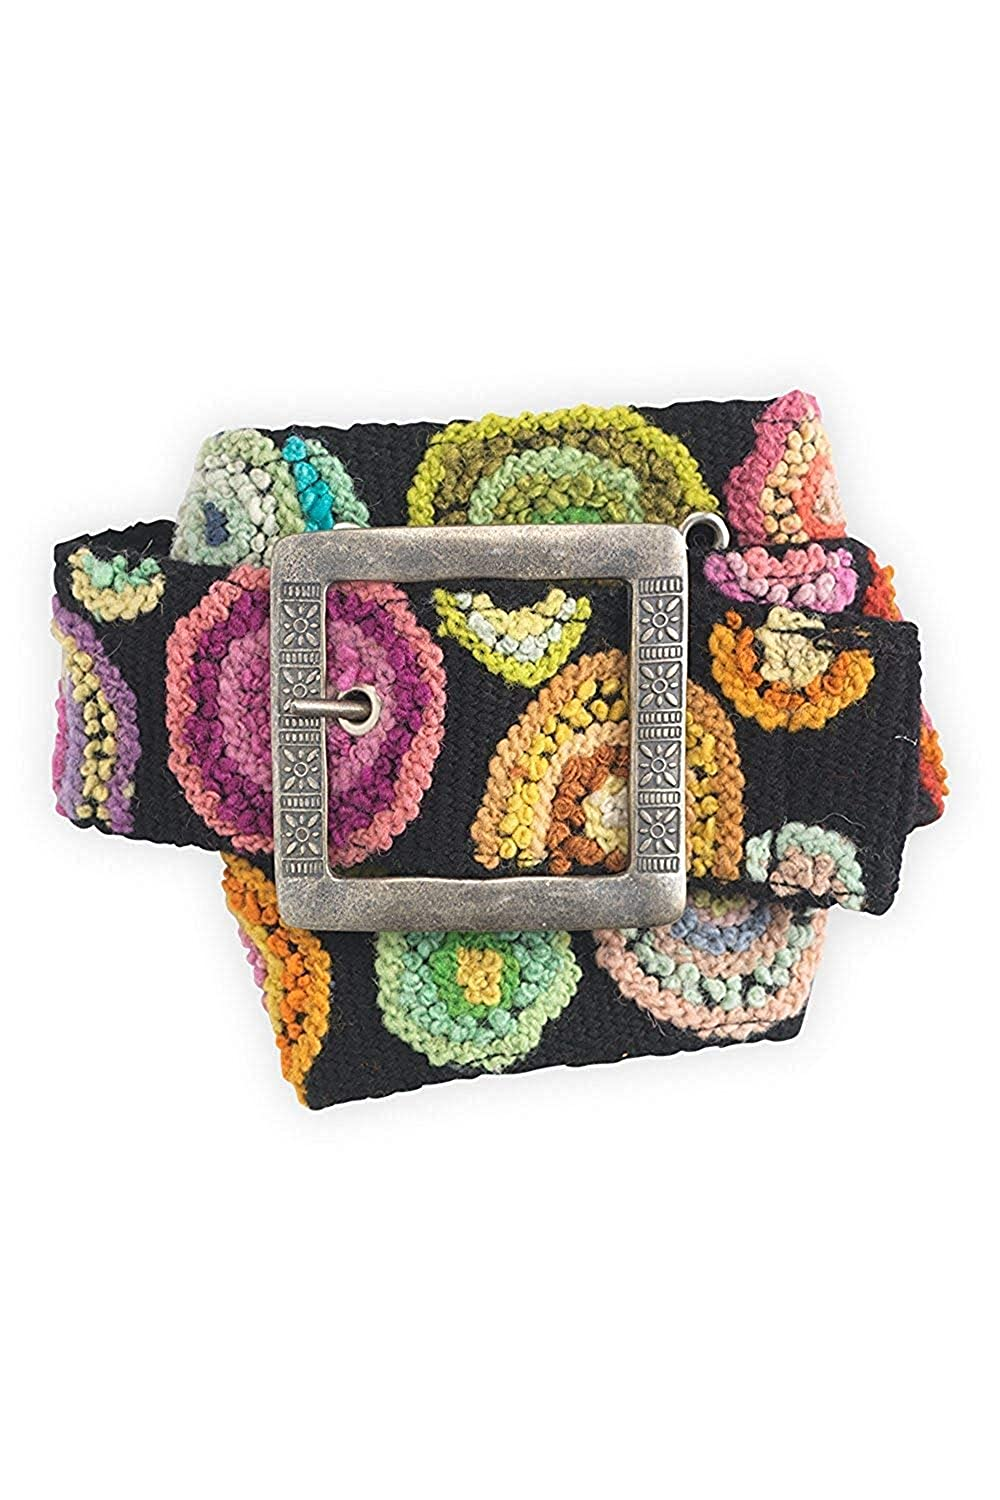 Tey-Art Circle Me Hand Embroidered Wool Fair Trade Belt (並行輸入品) B07DY8R9MK One Color S (23-31)